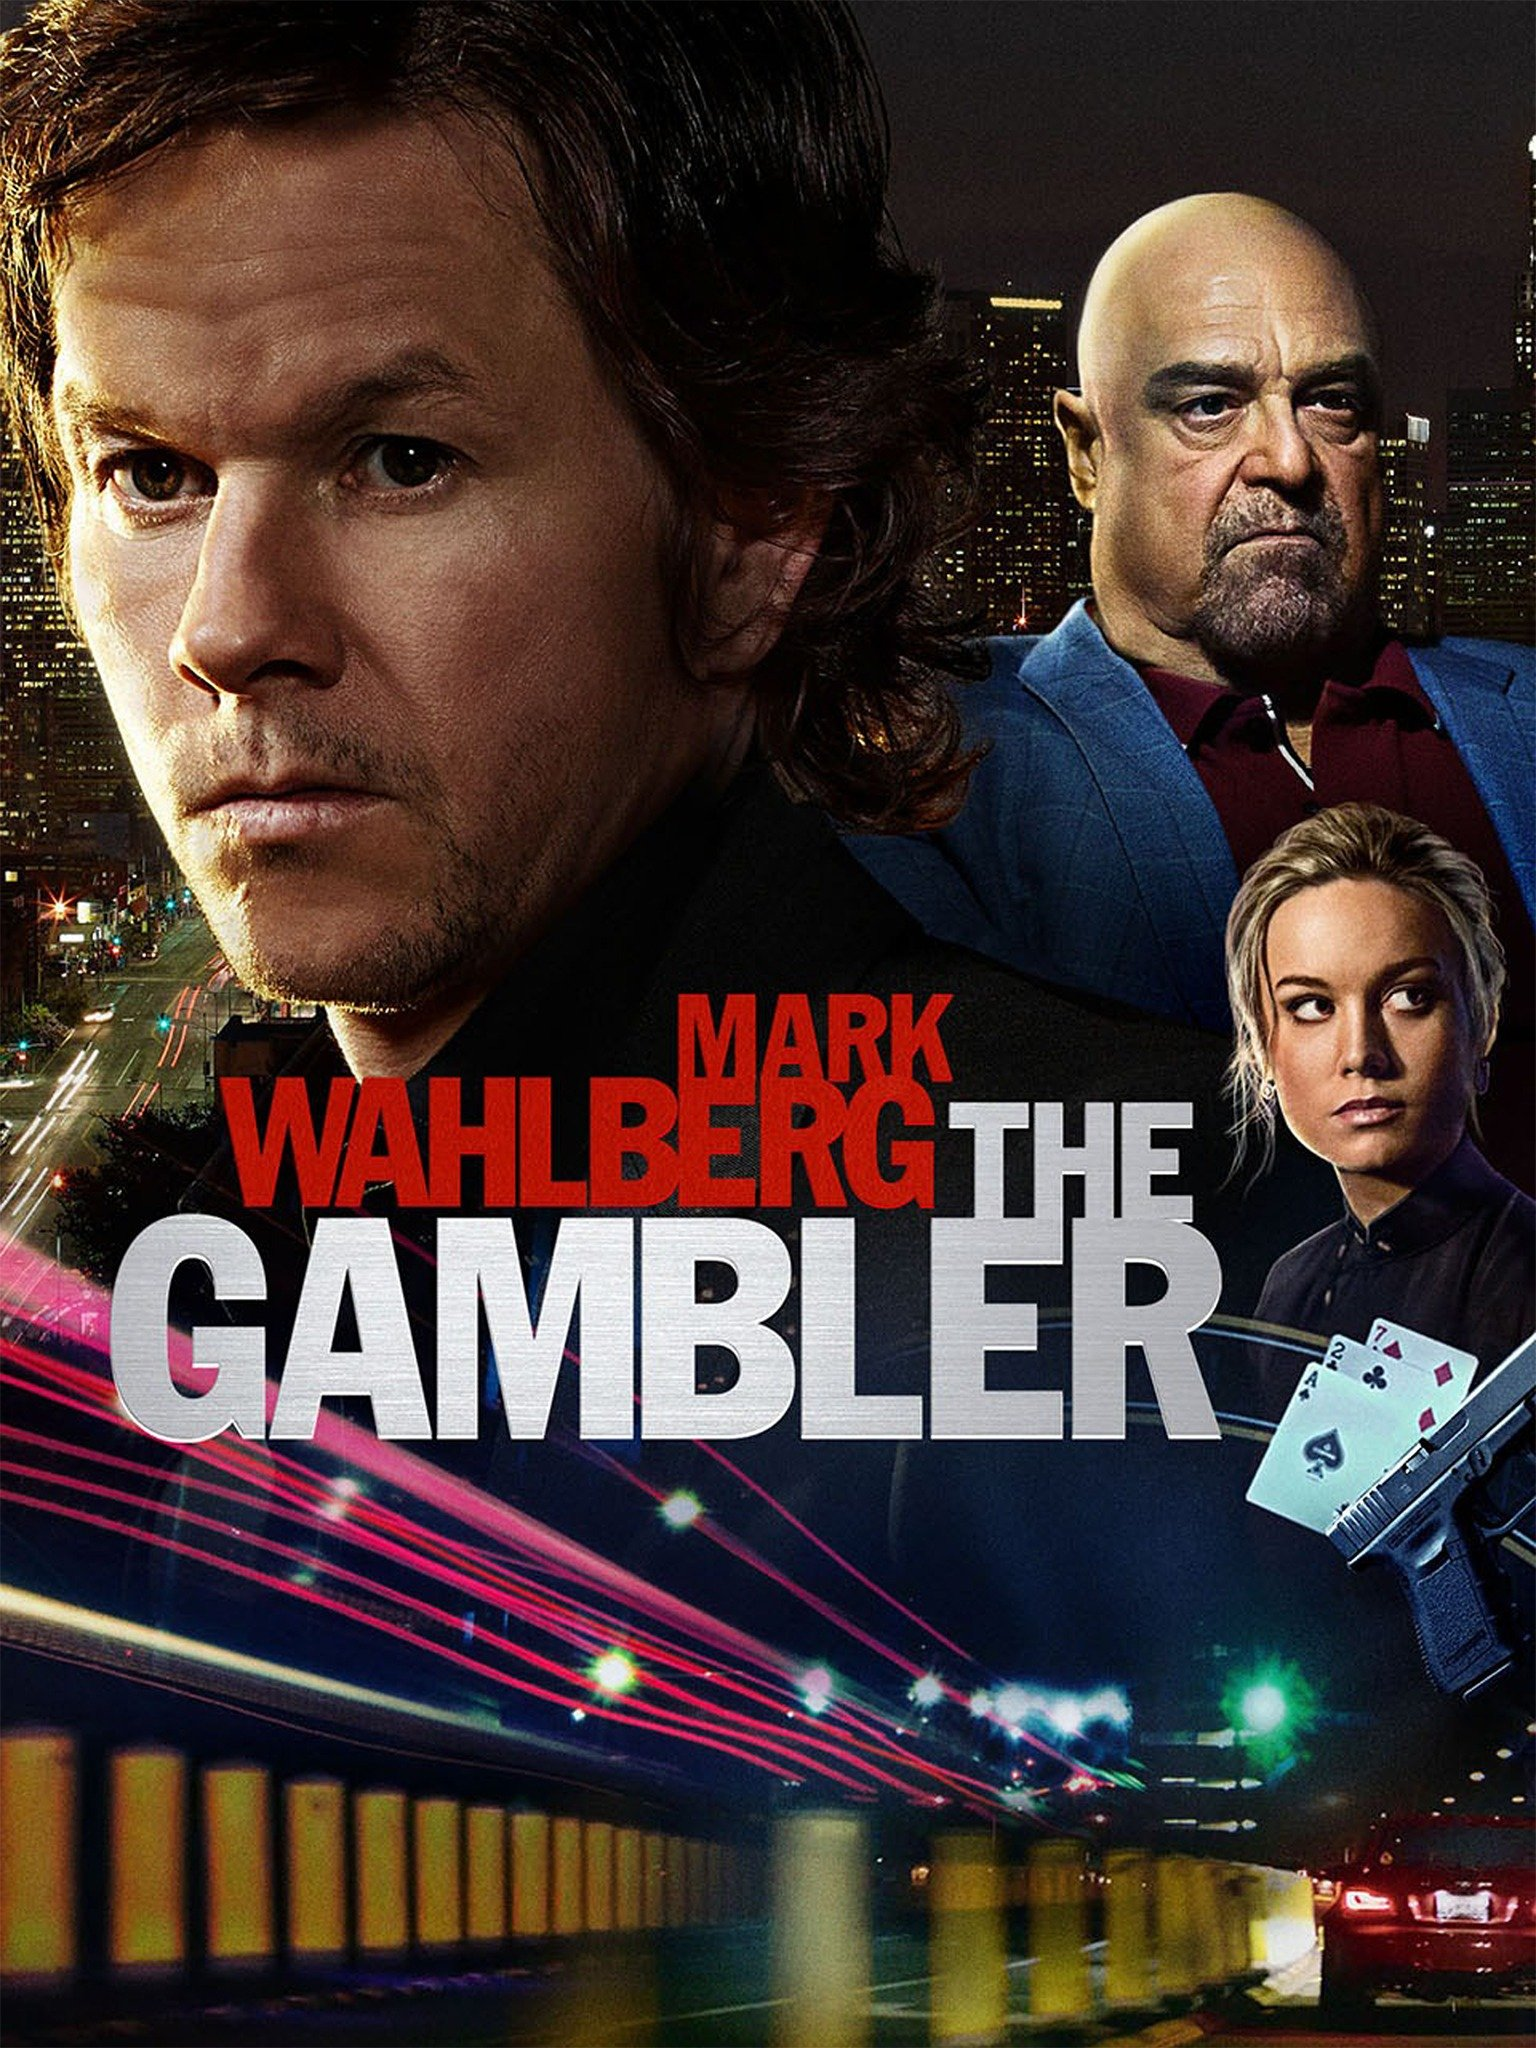 The Gambler 2014 Rotten Tomatoes